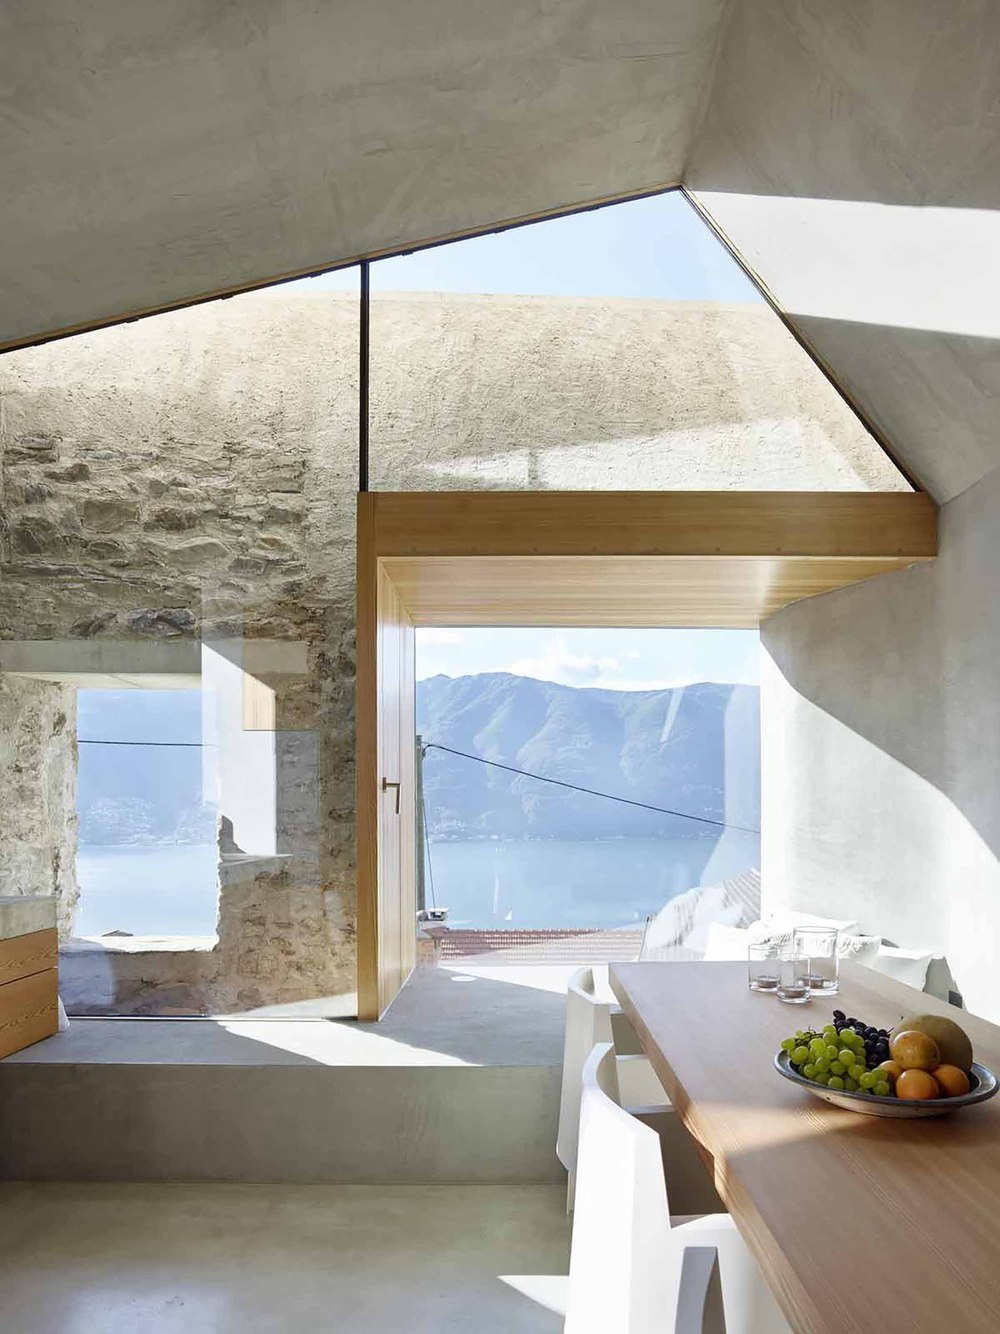 543dd5e7c07a80762d00024e_stone-house-transformation-in-scaiano-wespi-de-meuron-romeo-architects_1430_cf030655.jpg